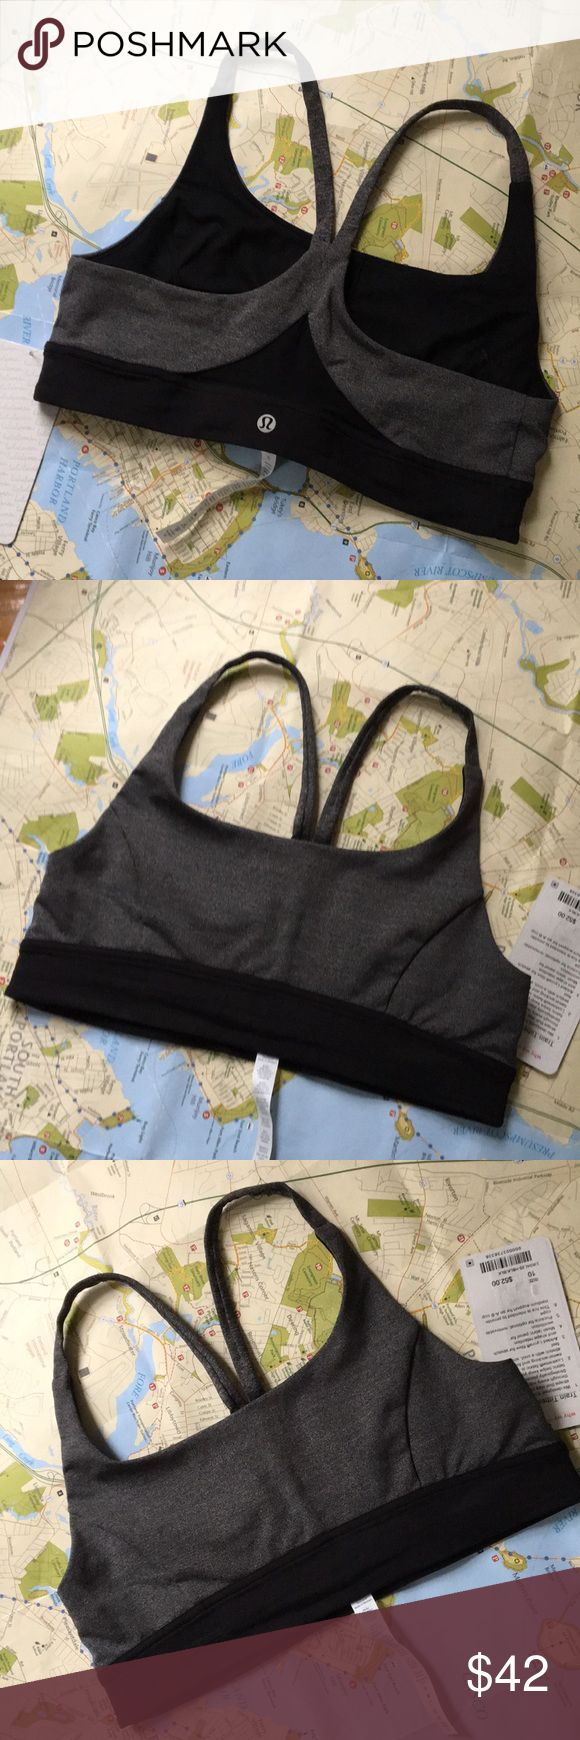 Lululemon NWT Train Times Bra Size 10+red lulu bag On sale at lulu online right now if you'd rather get it there. I will include a free red lulu bag with this purchase if you buy from me. Straps stay in place, see through mesh in back lets you breathe. Luxtreme and Lycra keep you cool and provide stretch. Pockets for optional cups (not included, but you can get for free at any lulu store). Intended for medium support for an A-B cup.  Very versatile grayish heathers color. Color: HBLK/BLK…